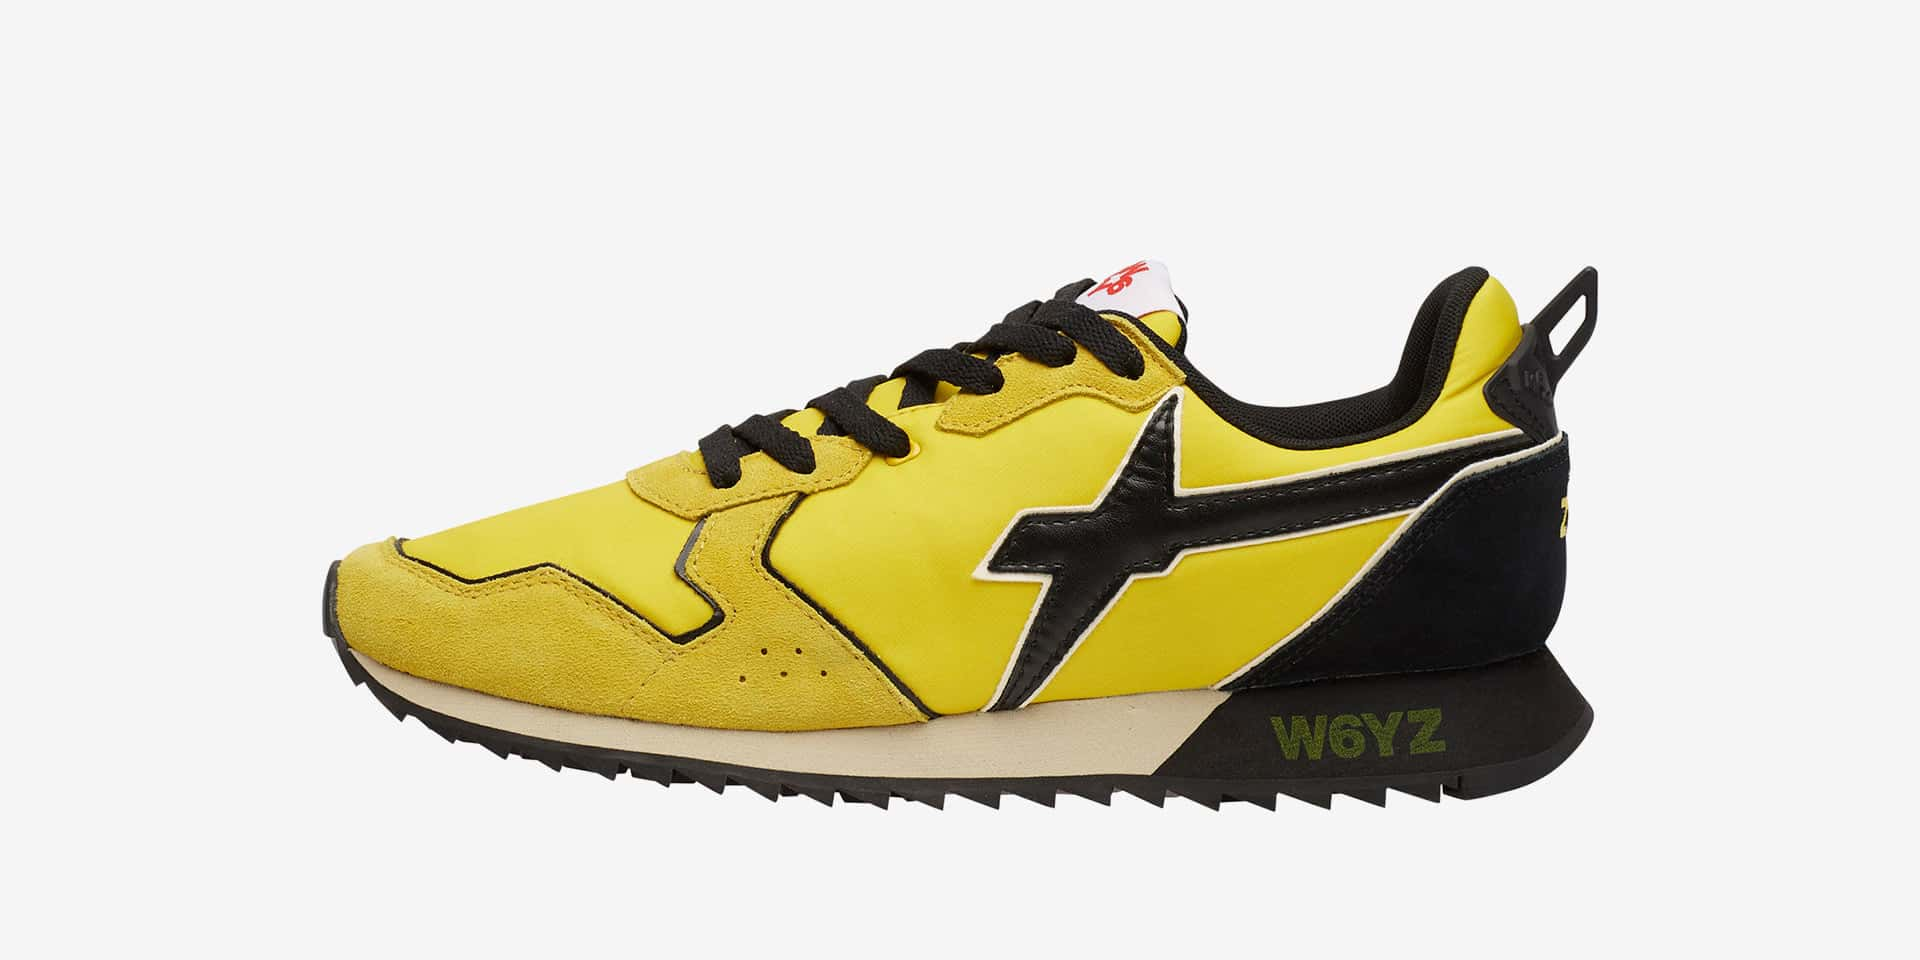 JET-M. - Fabric and leather sneakers - Yellow/Black